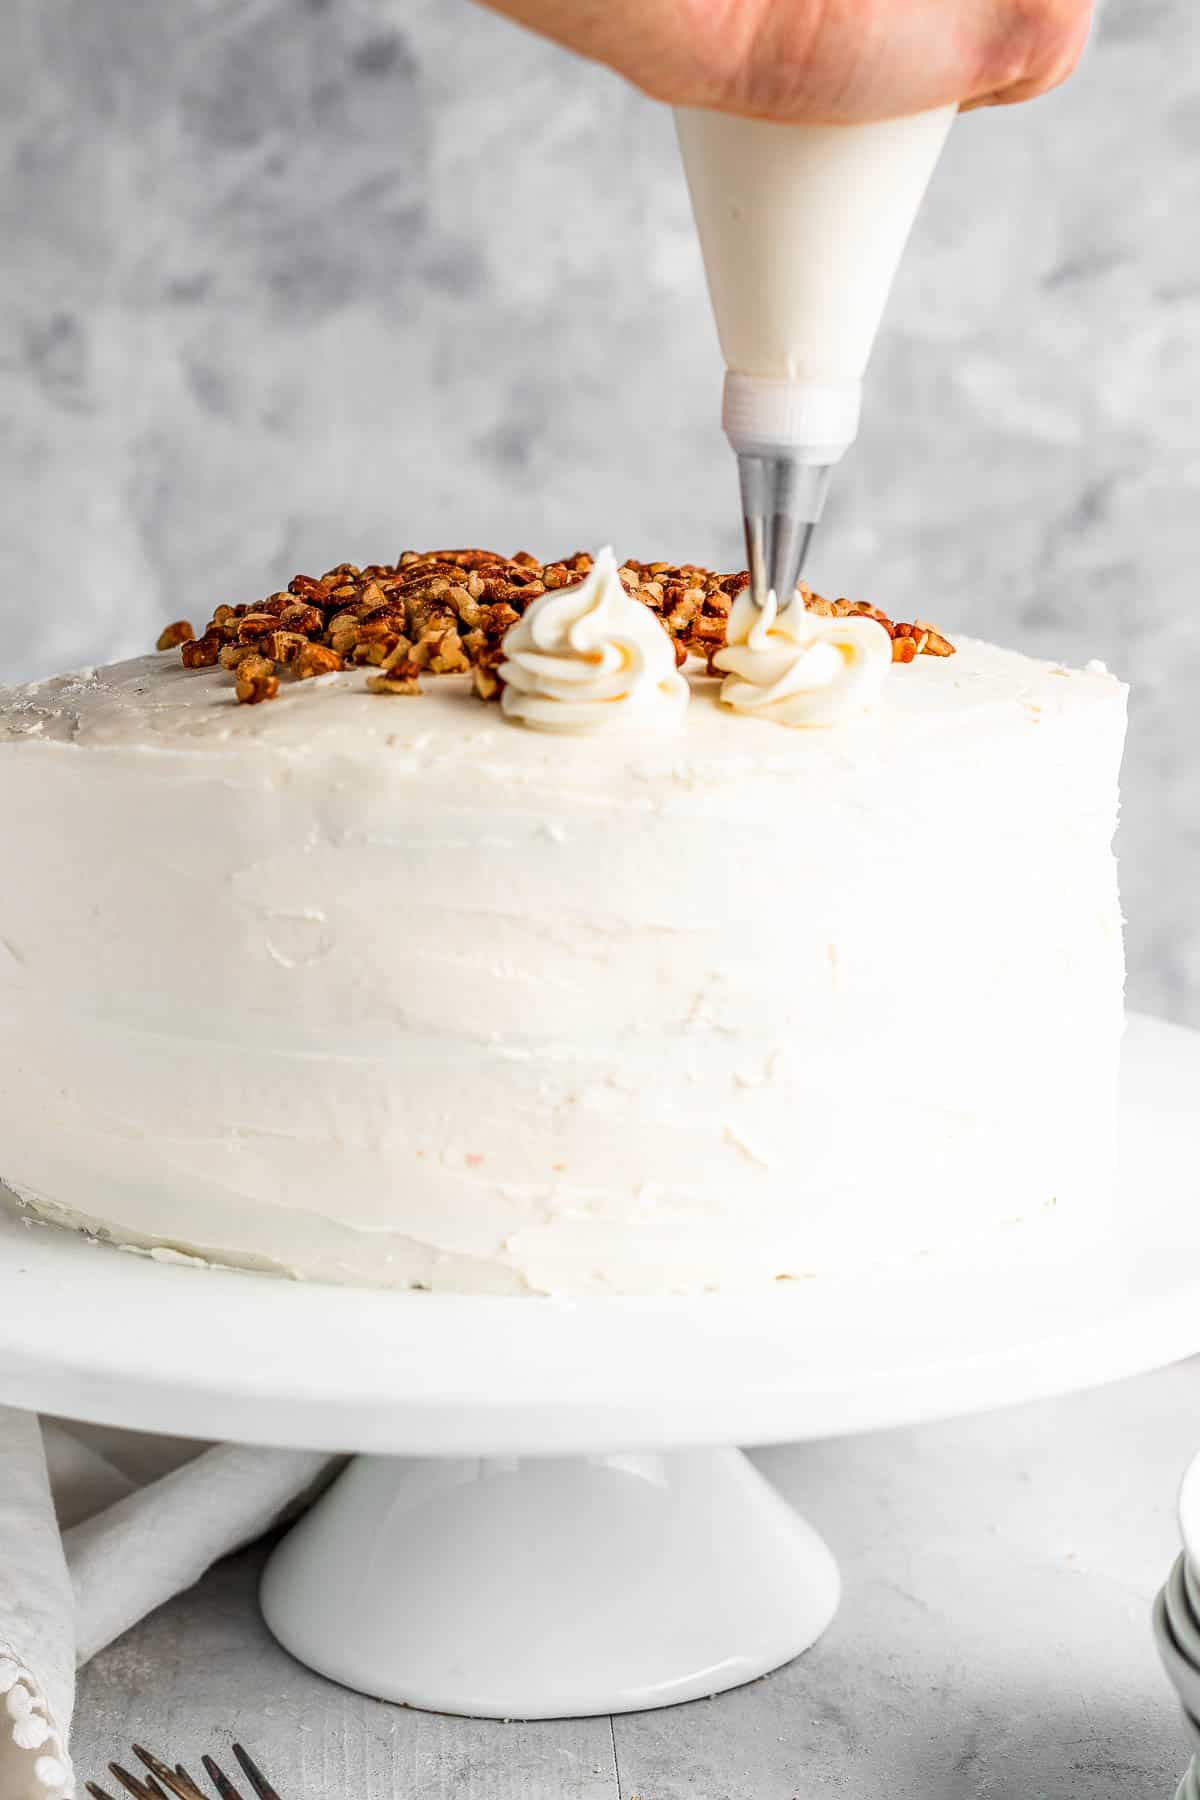 A Piping Tip Adding Swirls of Cream Cheese Icing Onto the Frosted Cake